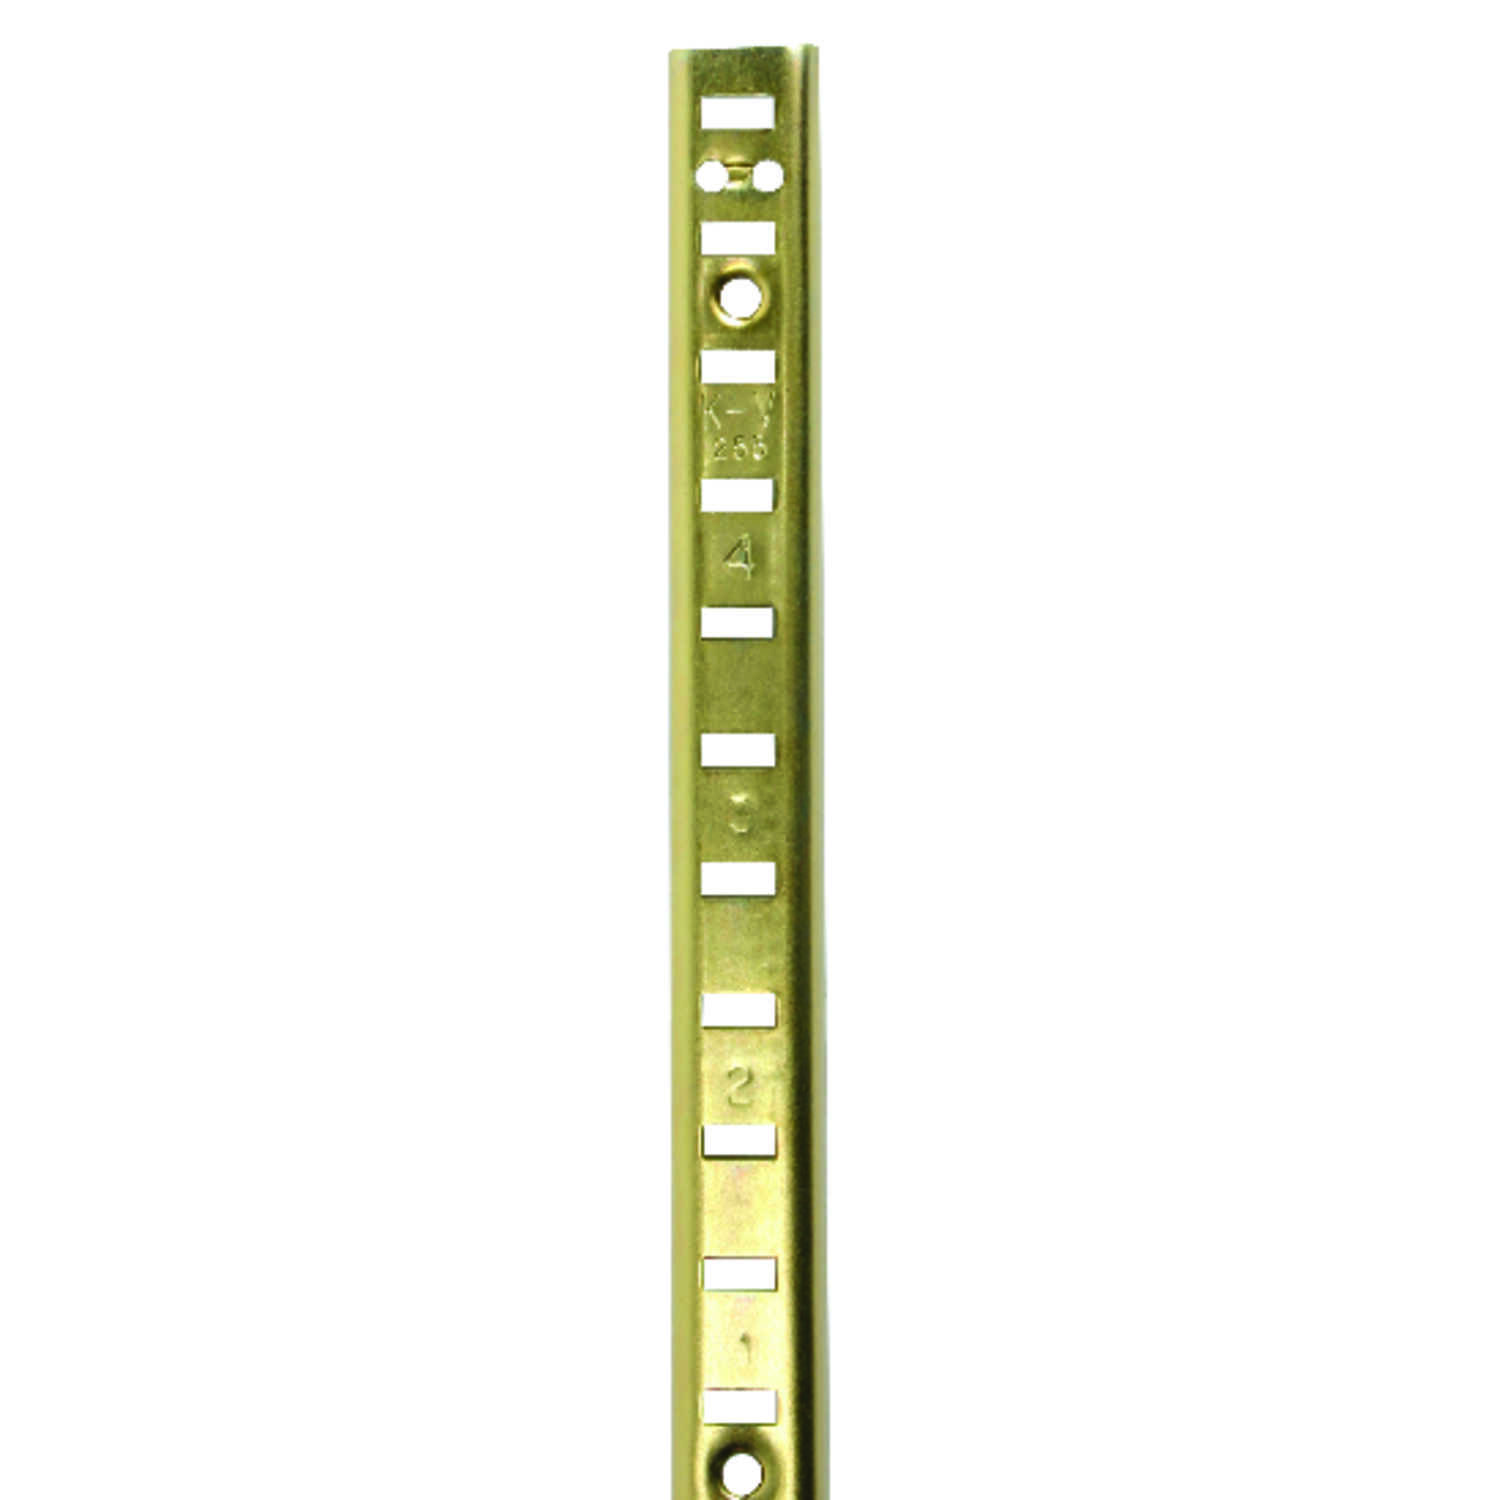 Knape & Vogt  Steel  Heavy Duty Shelf  Pilaster  23 Ga. 36 in. L 250 lb.